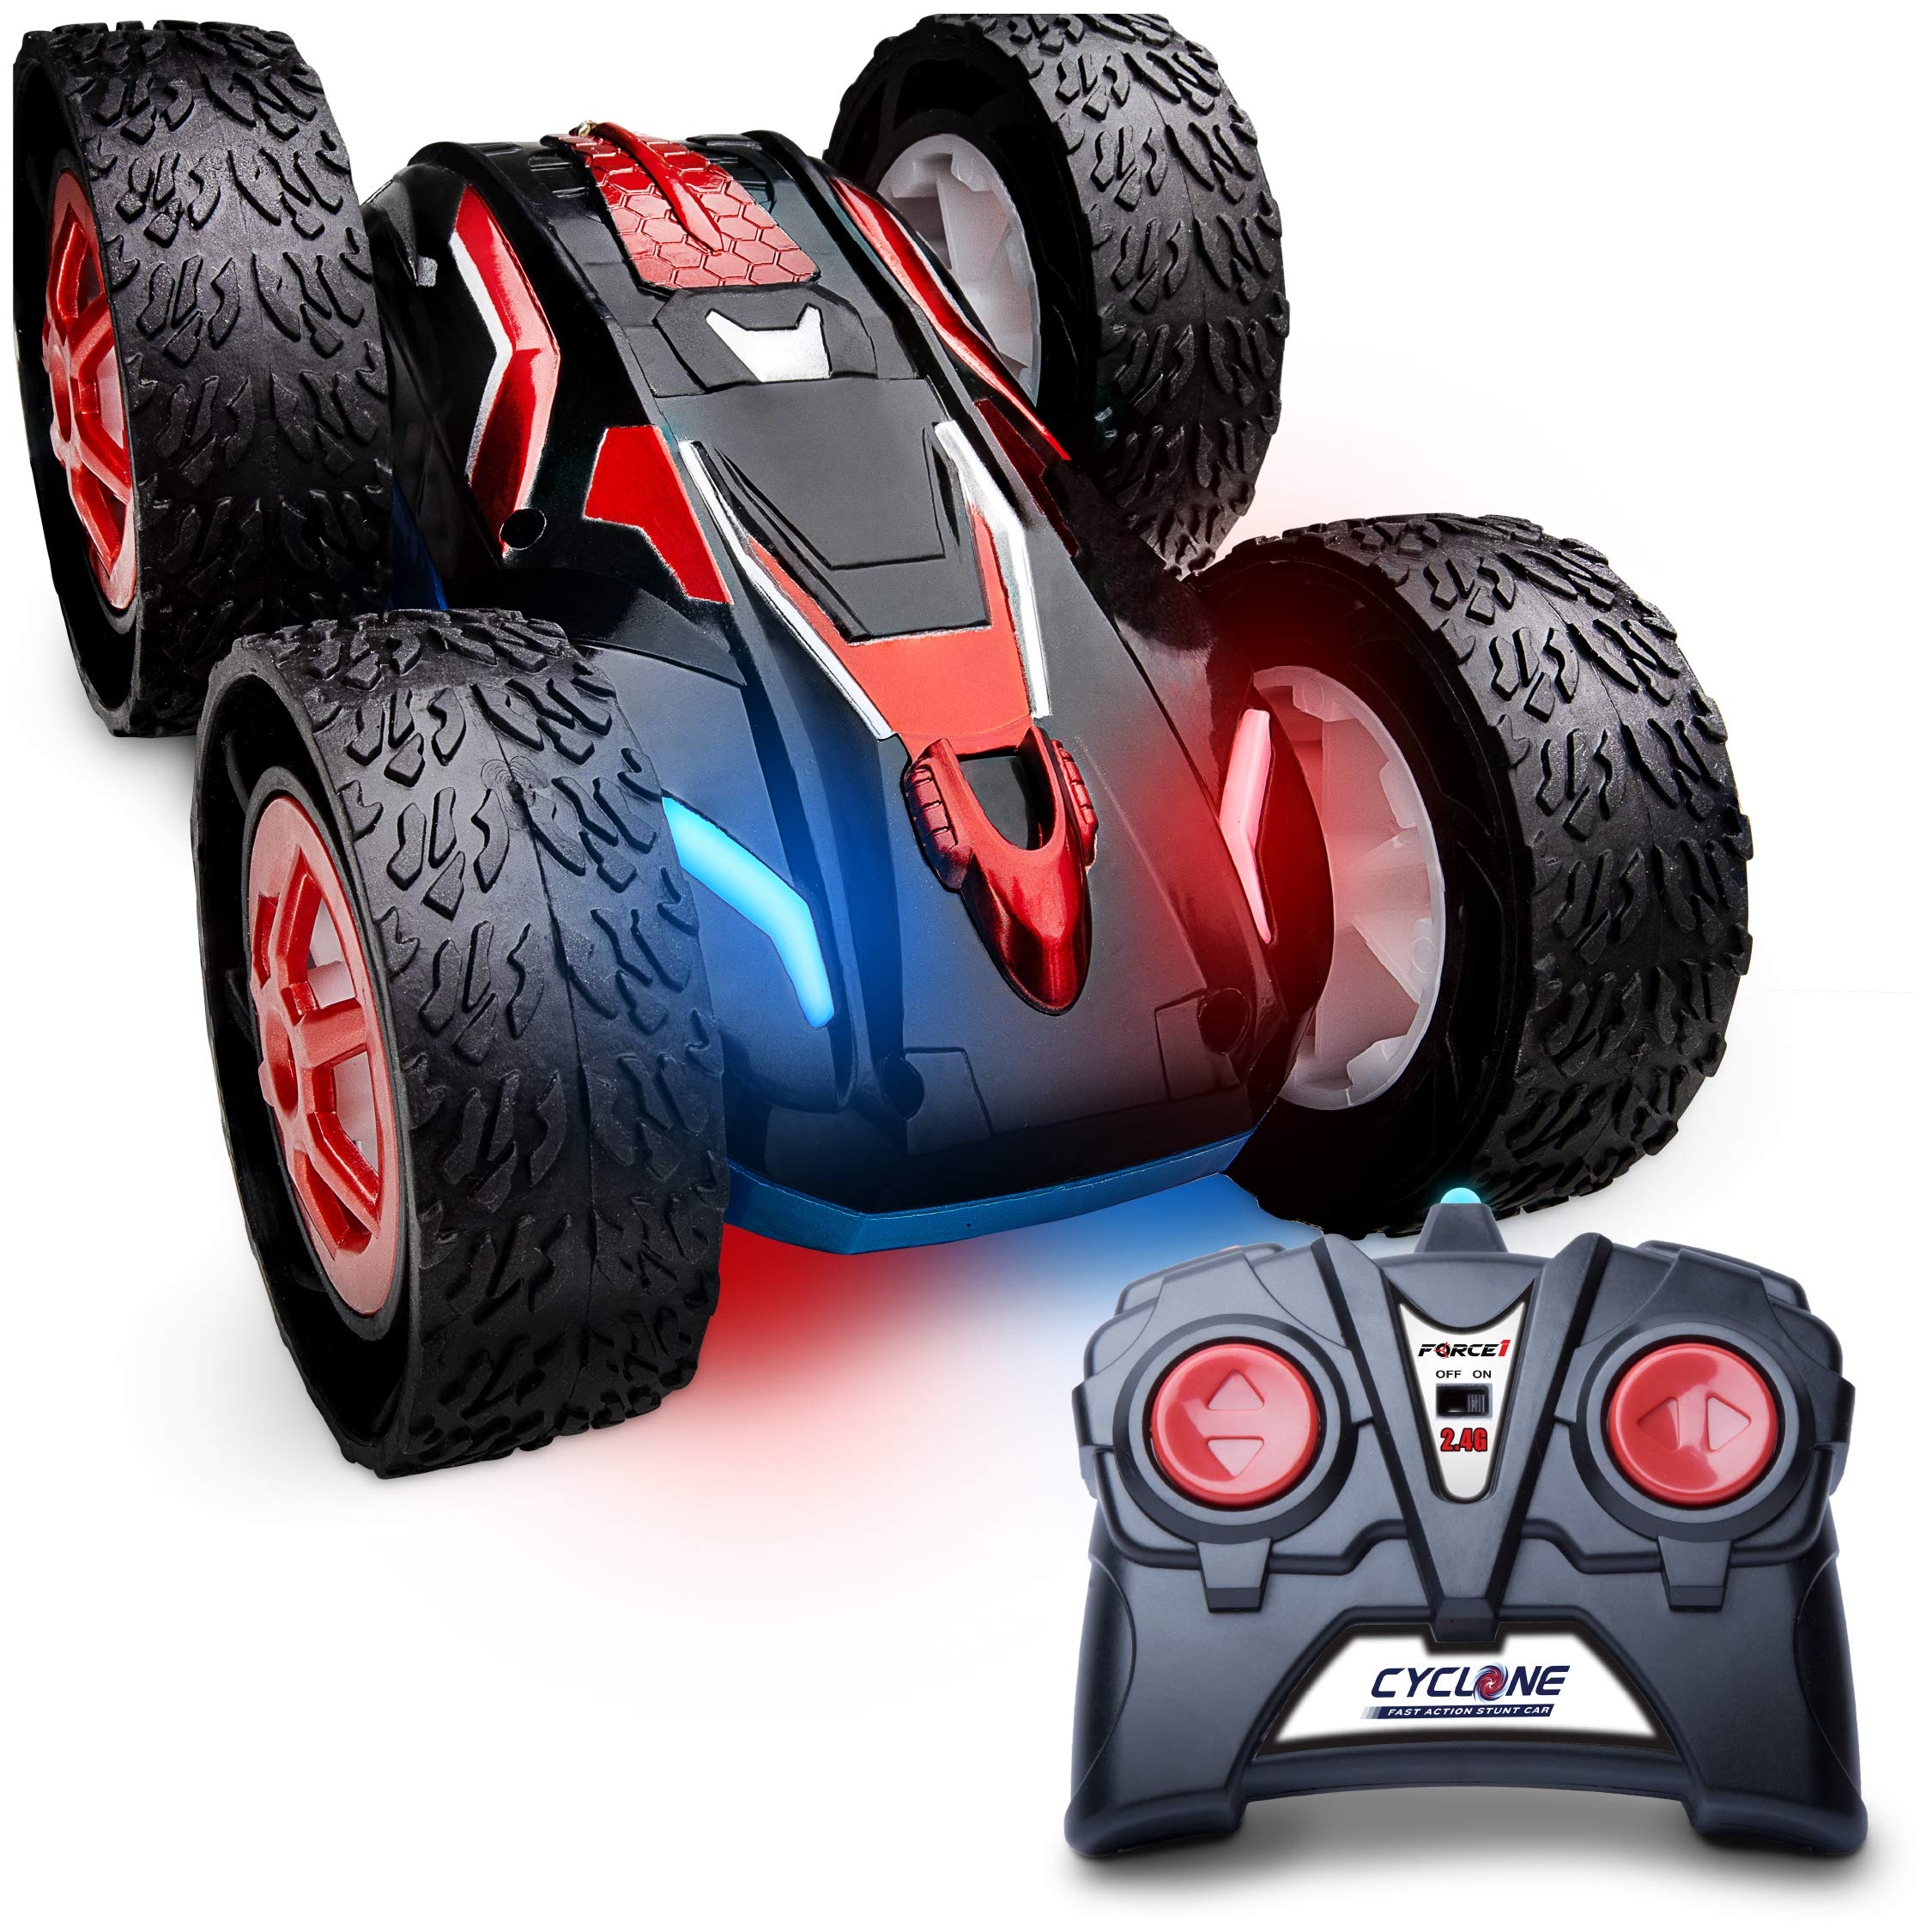 Force1 Cyclone Remote Control Car for Kids - Double Sided Fast Off Road Stunt Car for Car Racing, RC Cars for Boys and Girls w/ 2 Rechargeable Toy Car Batteries